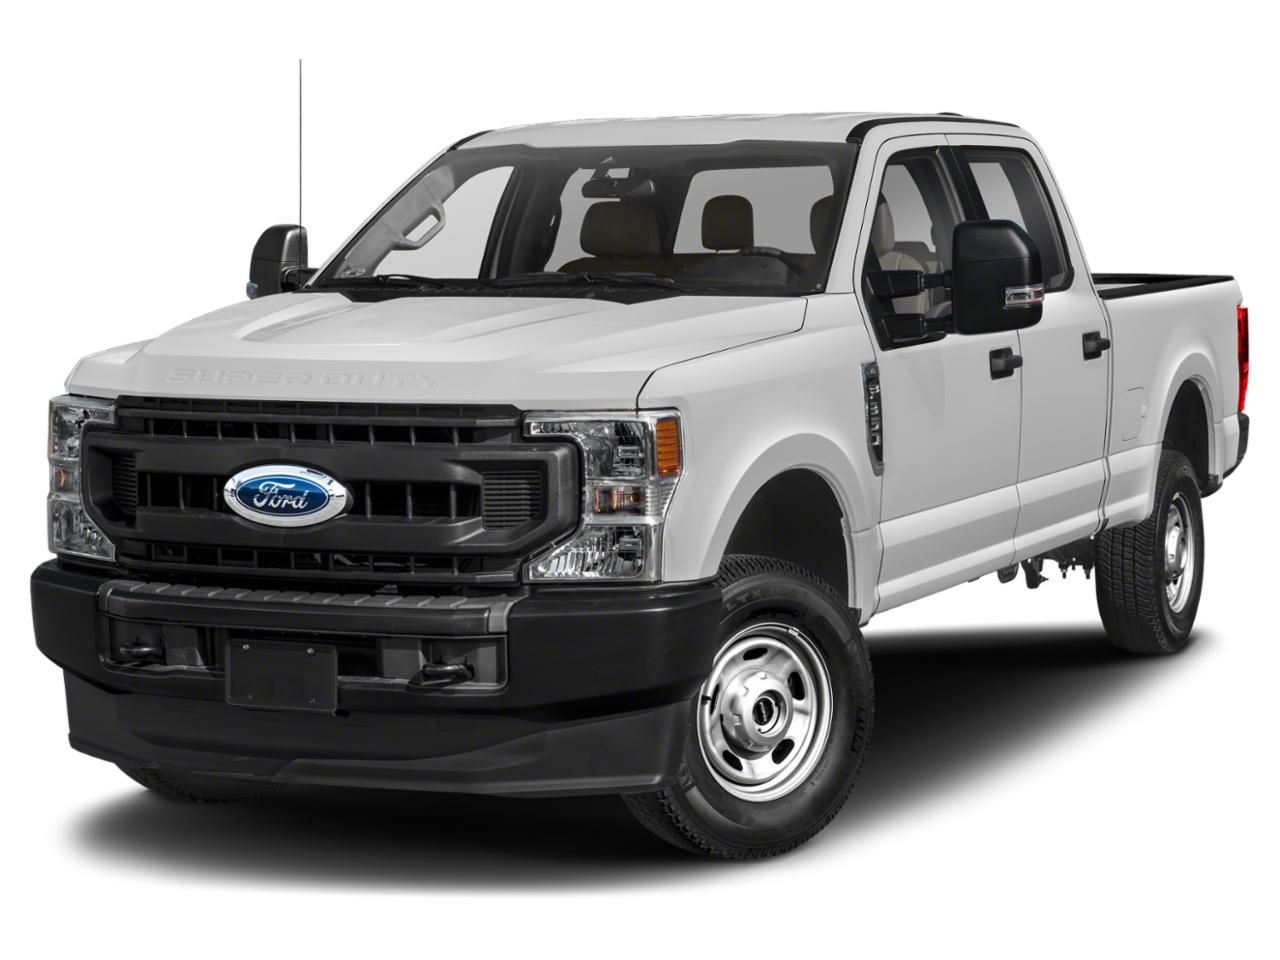 2020 Ford Super Duty F-350 DRW Vehicle Photo in Akron, OH 44303